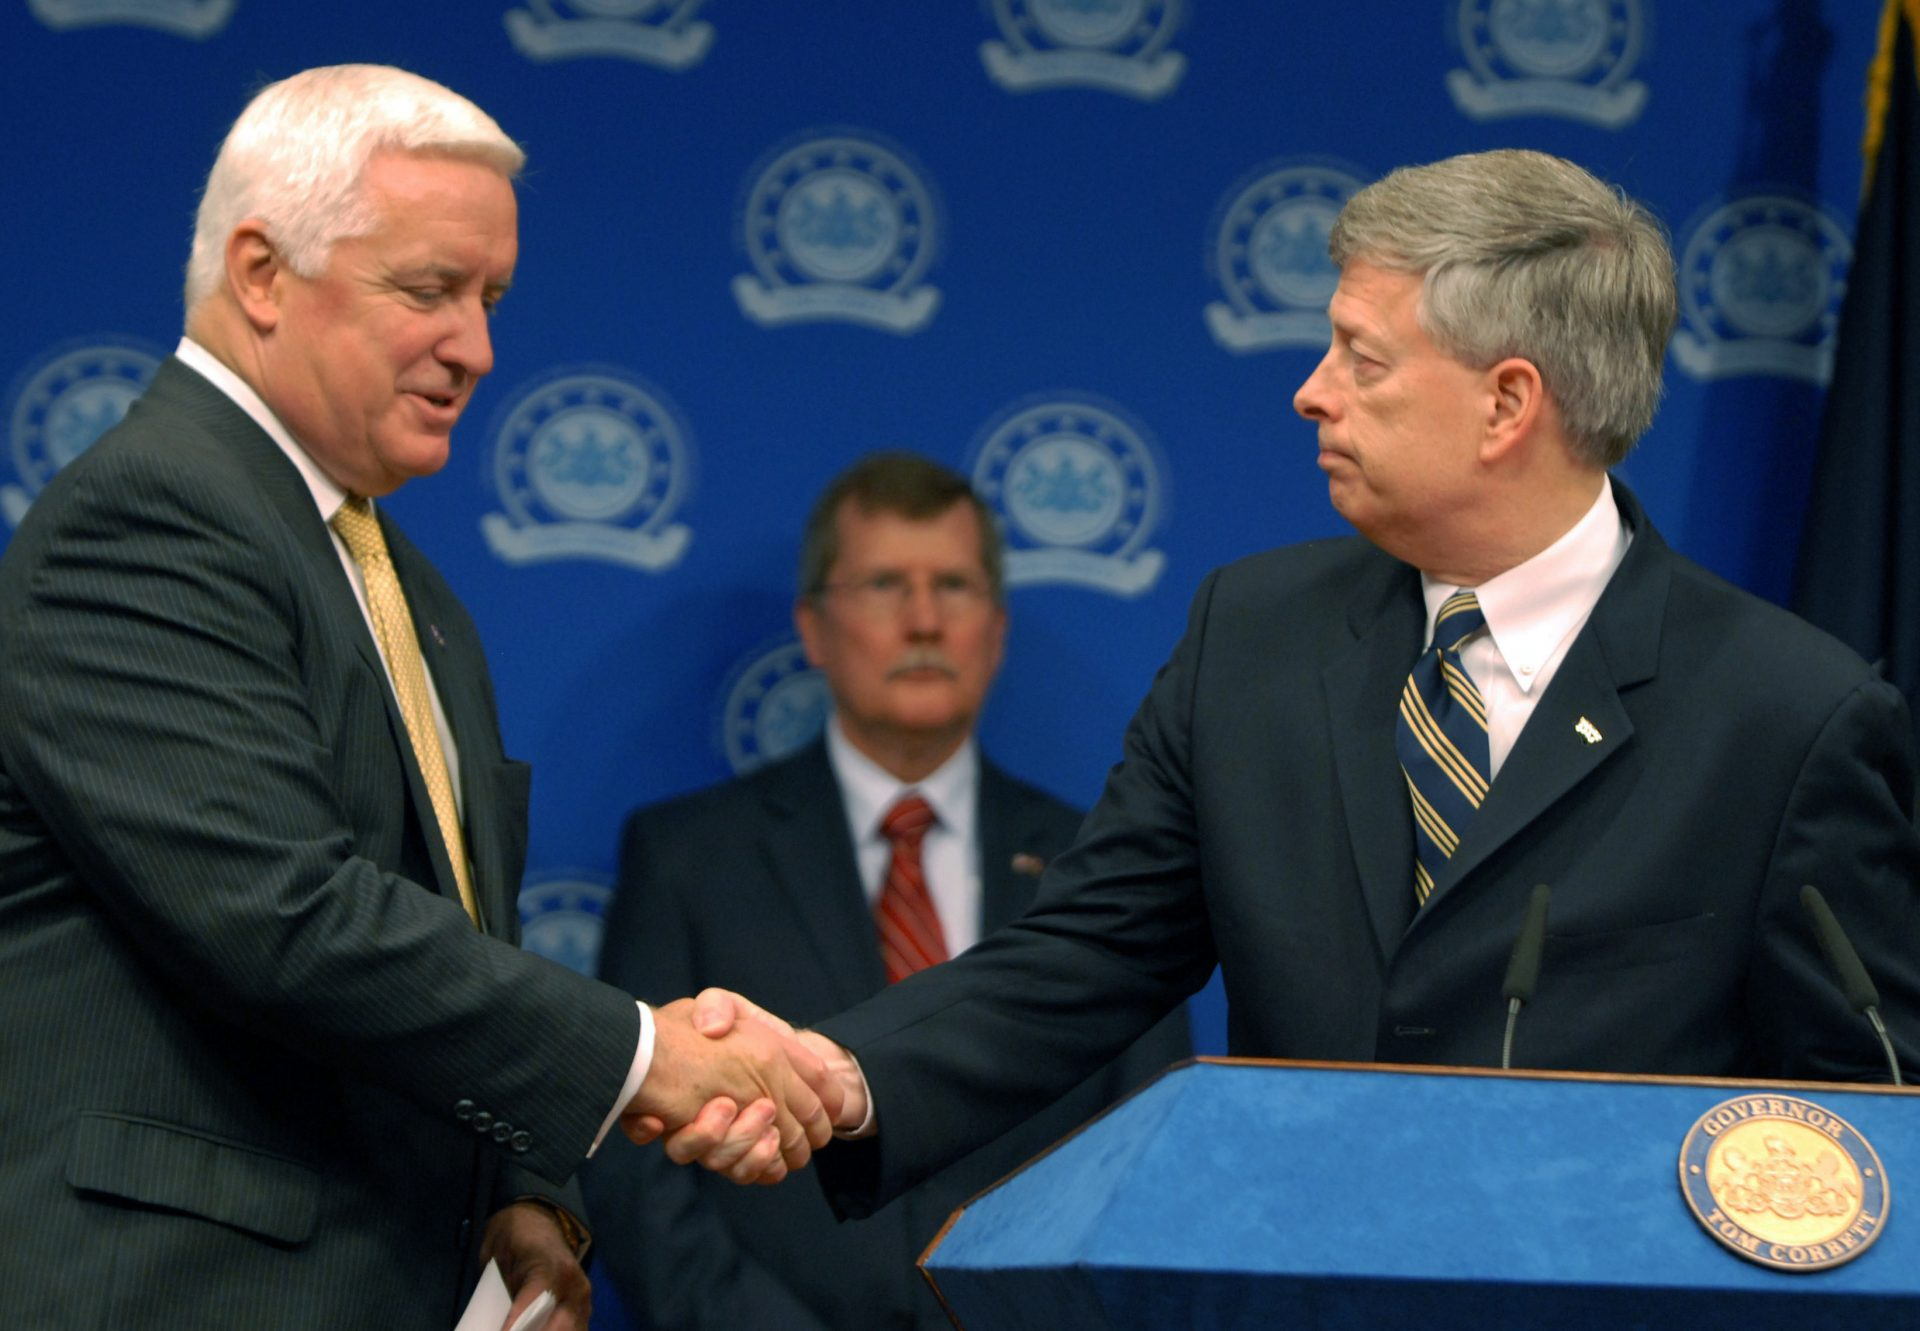 Pennsylvania Gov. Tom Corbett, left, shakes hands with Pittsburgh Chancellor Mark Nordenerg, right, at a news conference Friday, June 29, 2012 in Harrisburg, Pa.